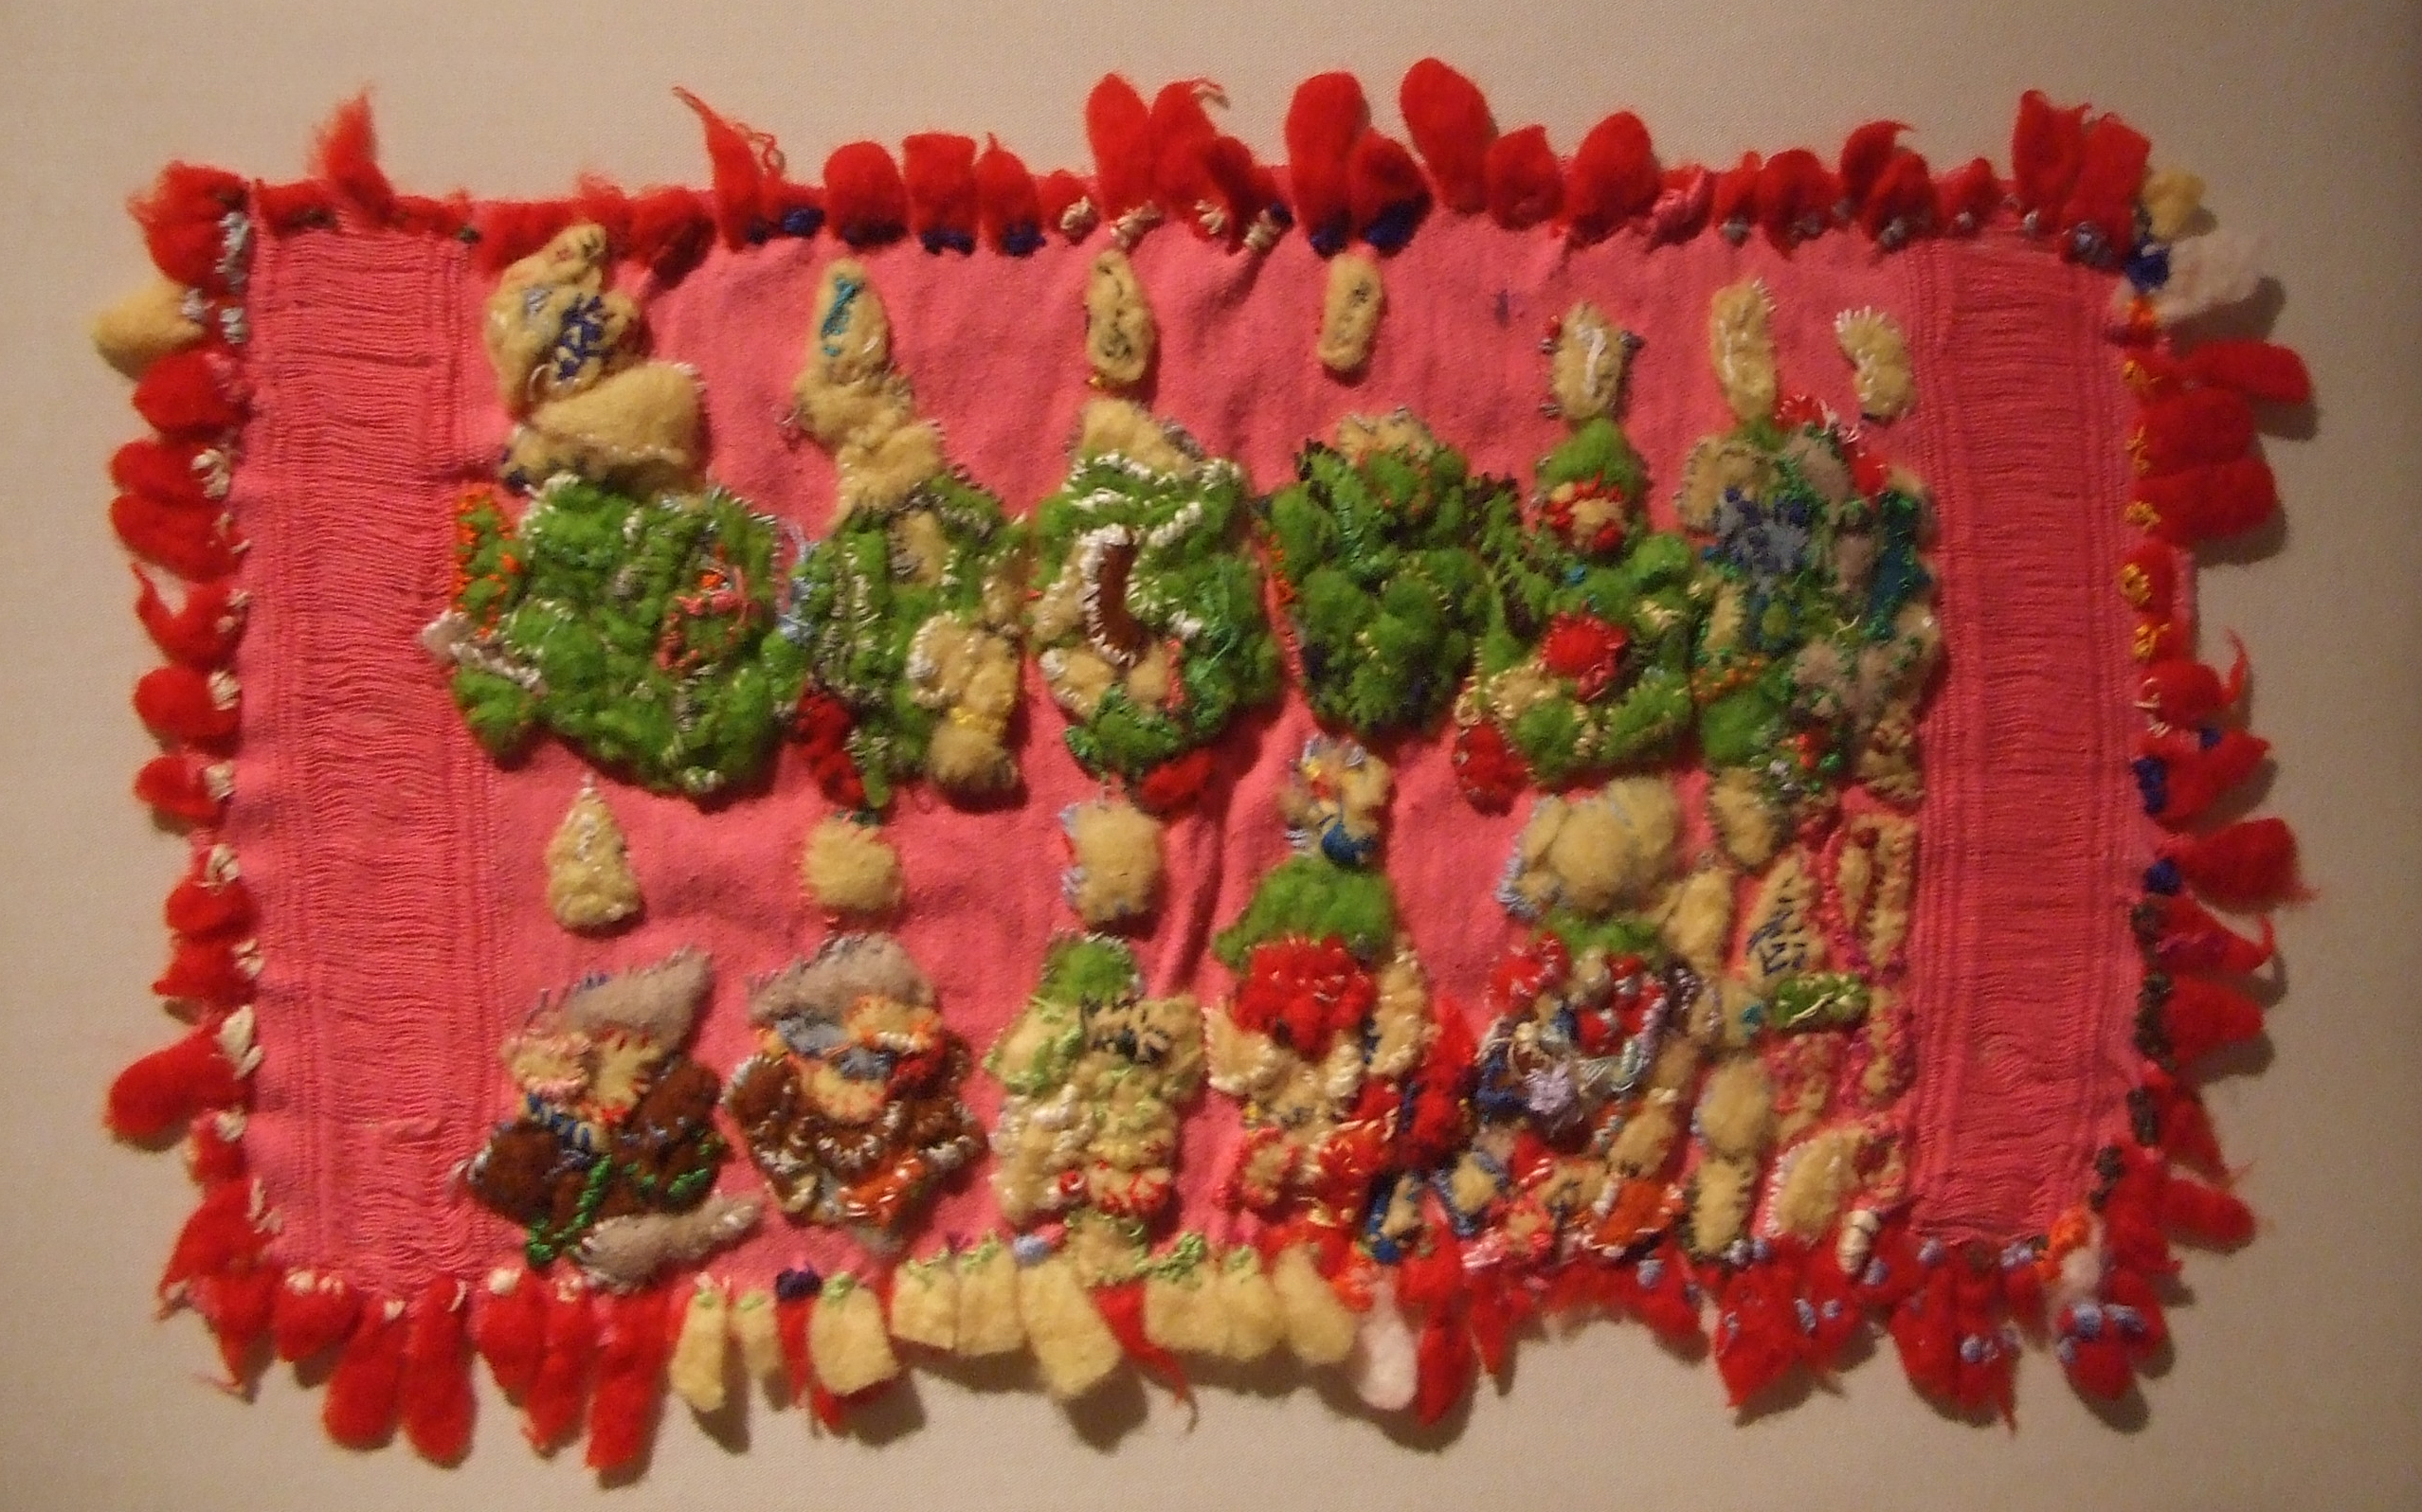 Norie Shukumatani Hyogo, Embroidered Strawberry, 2011, Embroidery thread, felt and cotton